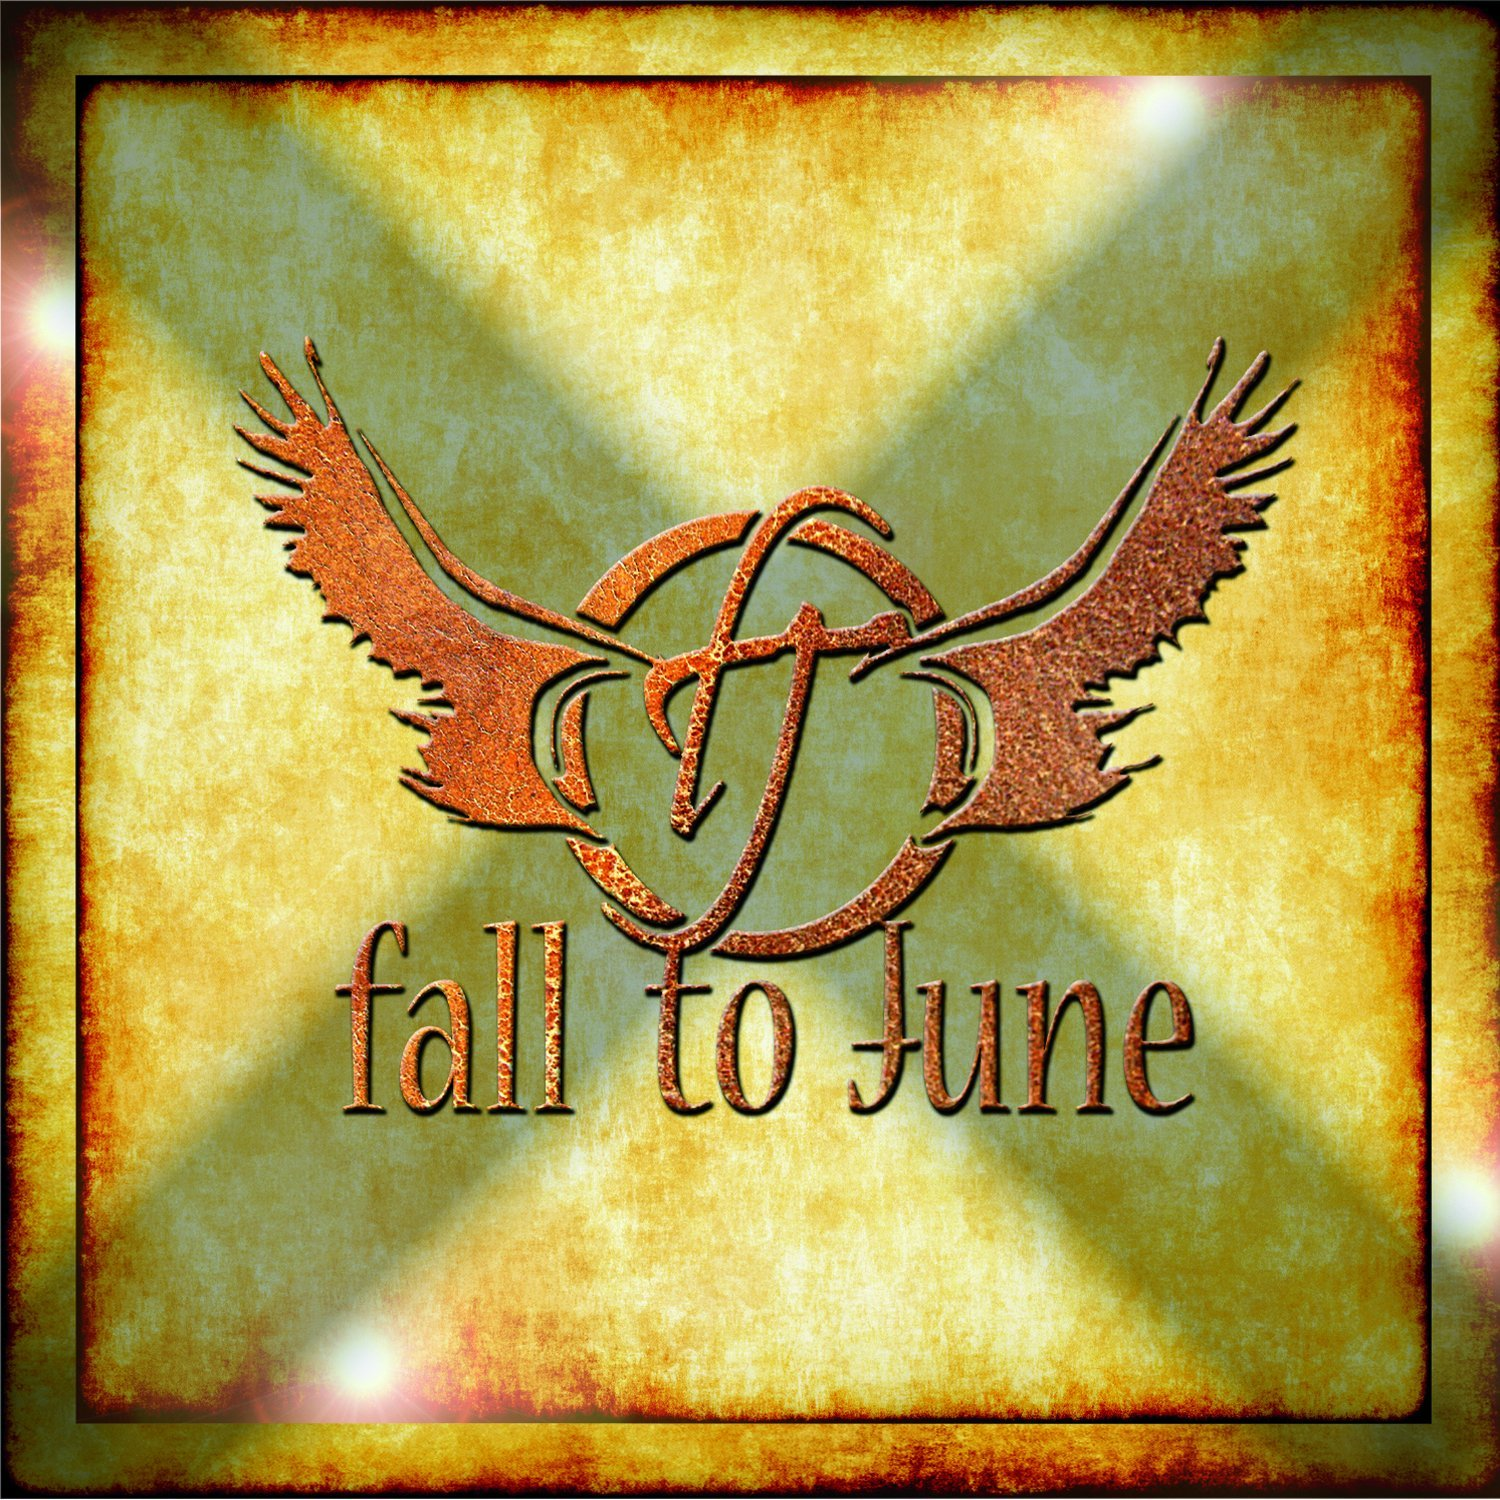 Fall To June - Fall To June